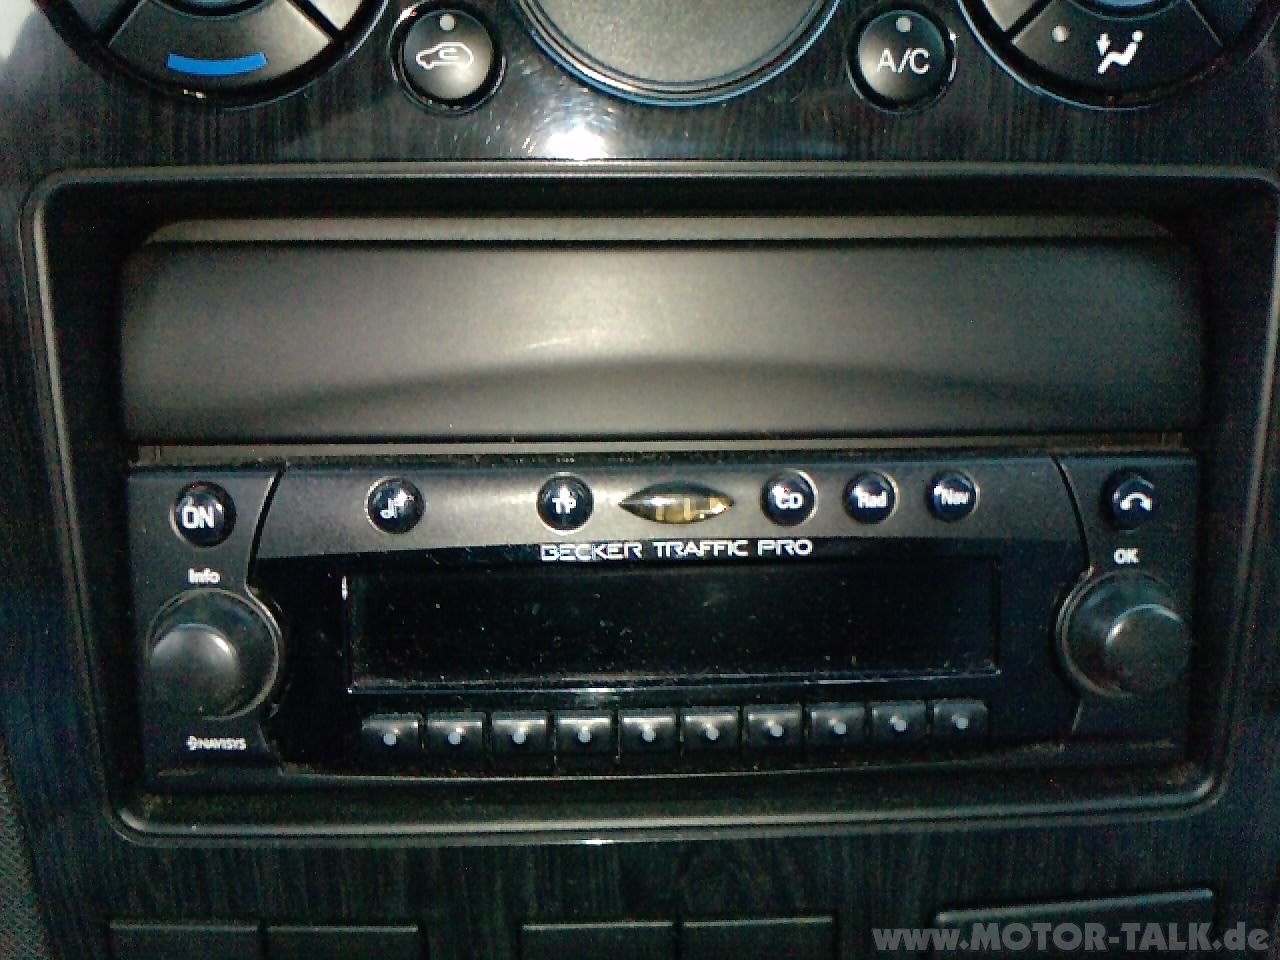 Download this Autoradio picture